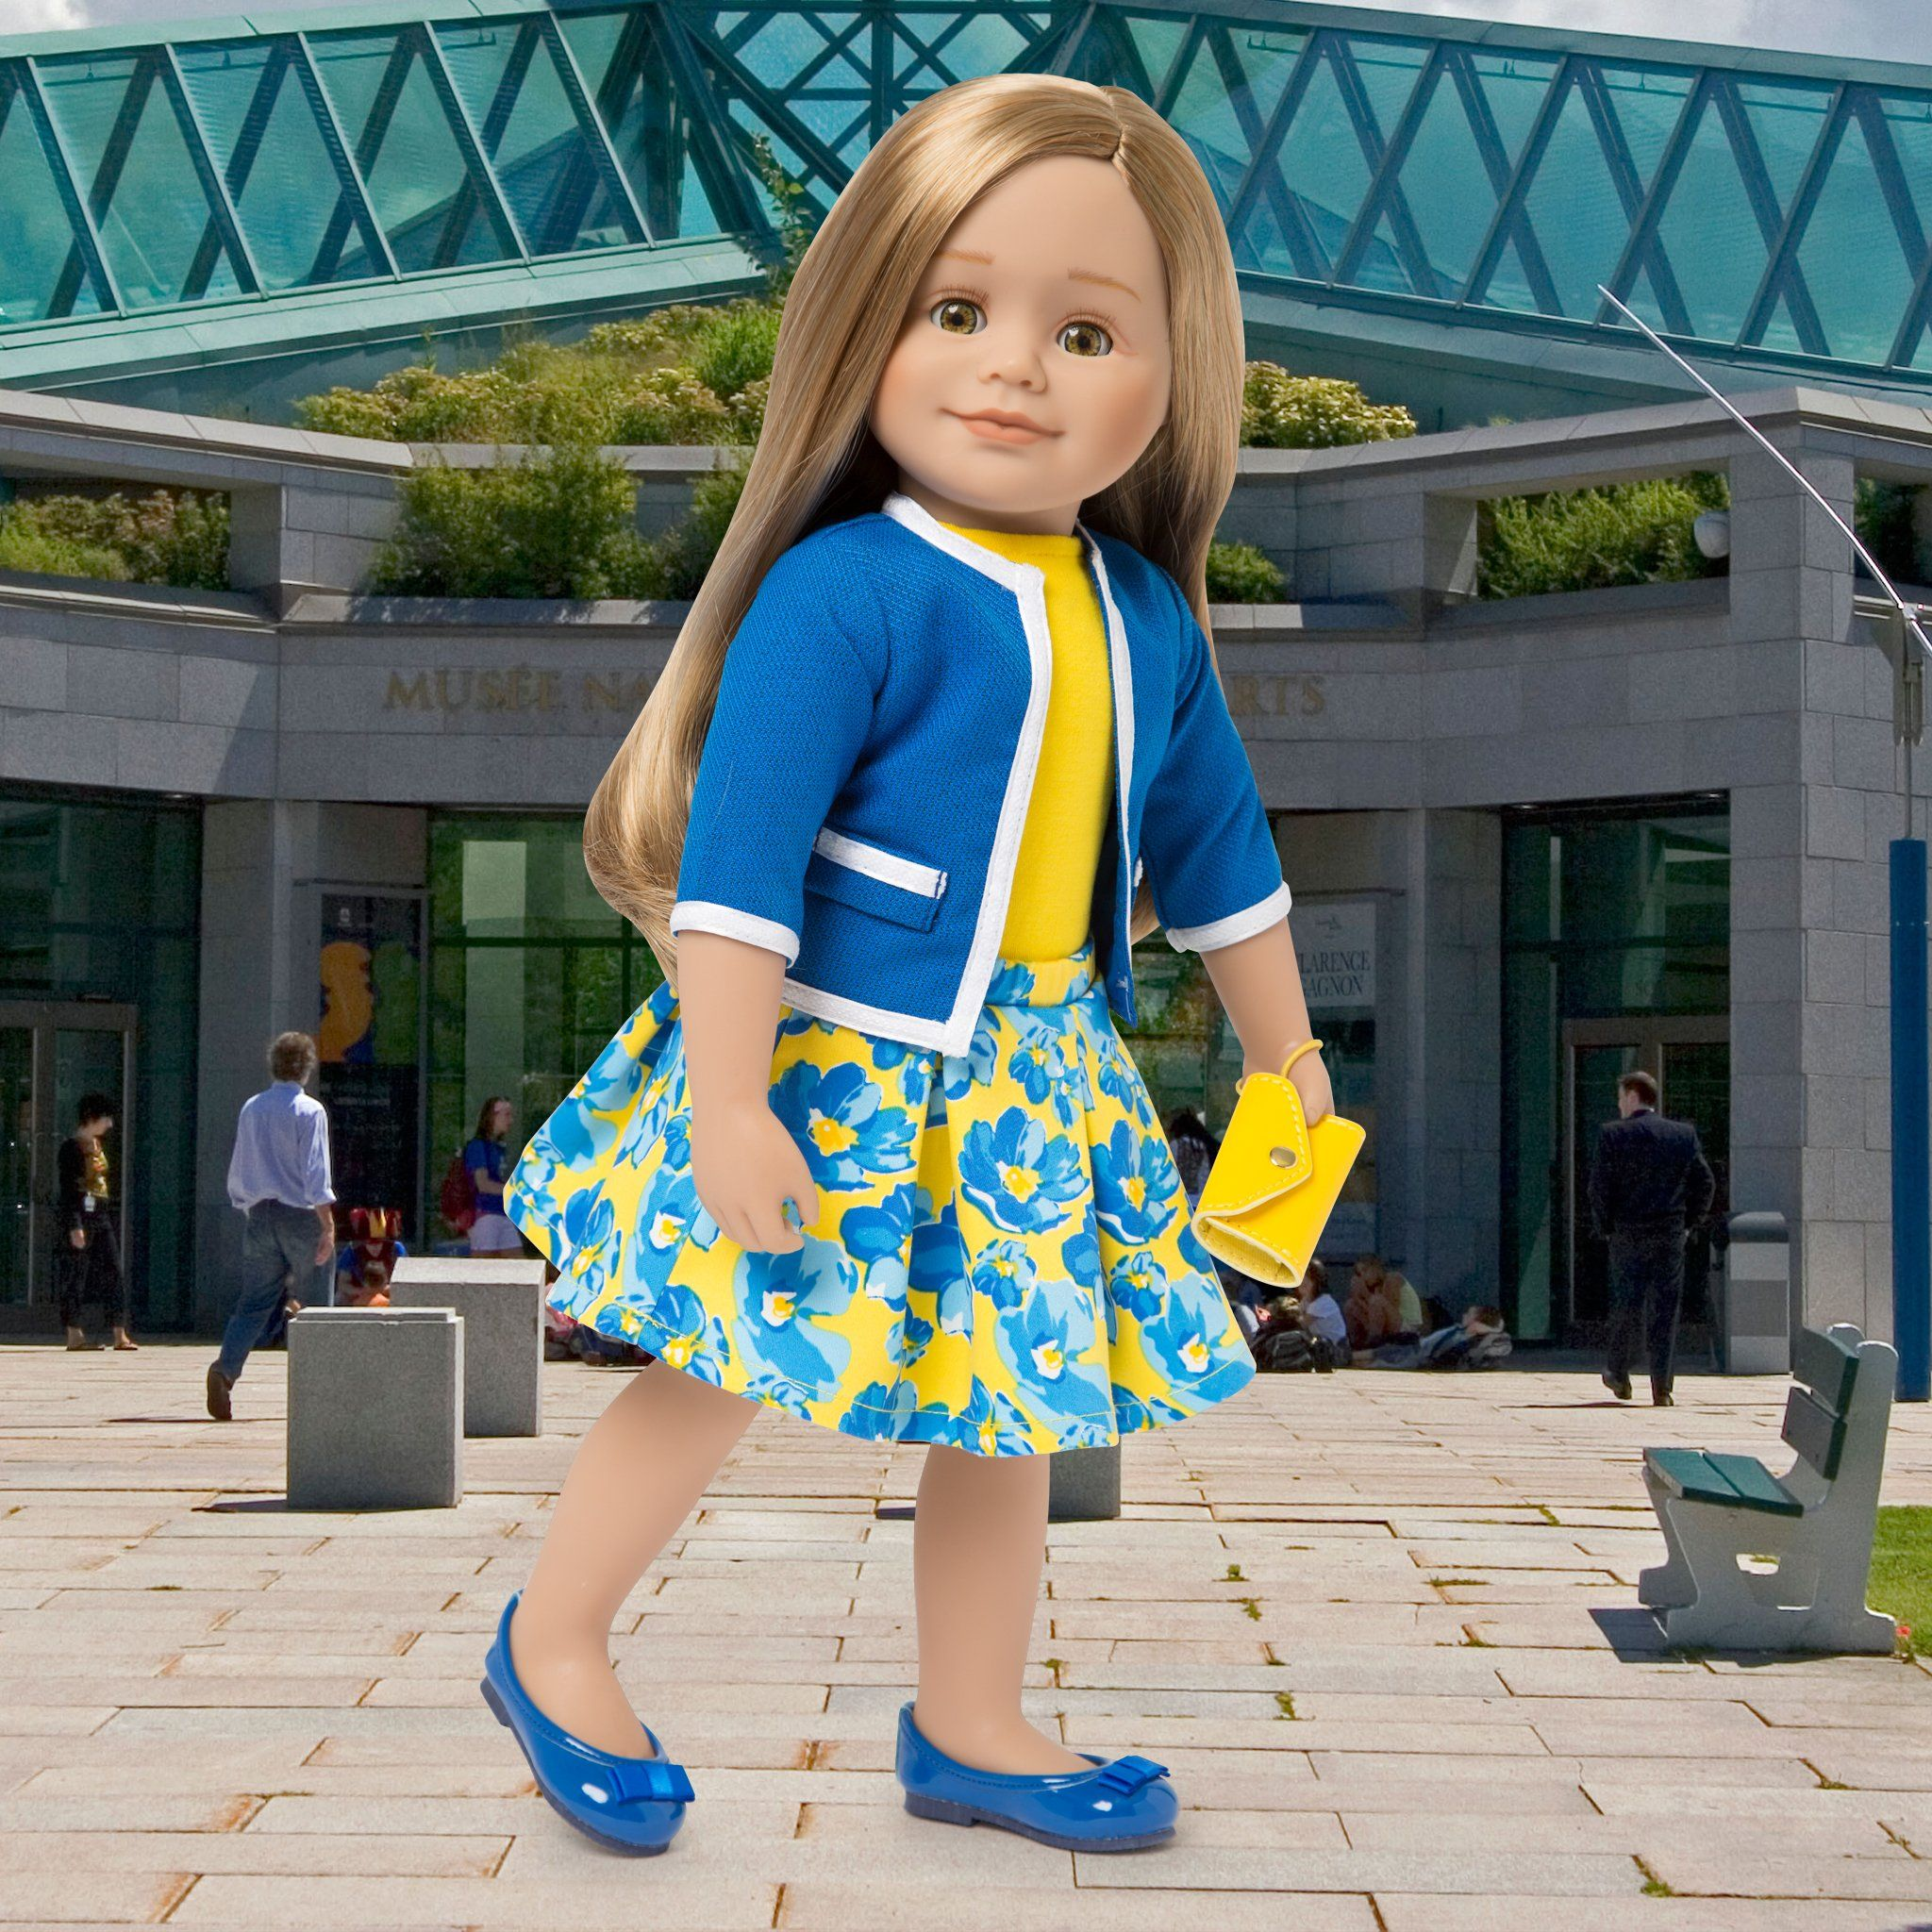 e3007a01c ... yellow Blue jacket with white trim, yellow top, blue and yellow floral  skirt, yellow ...